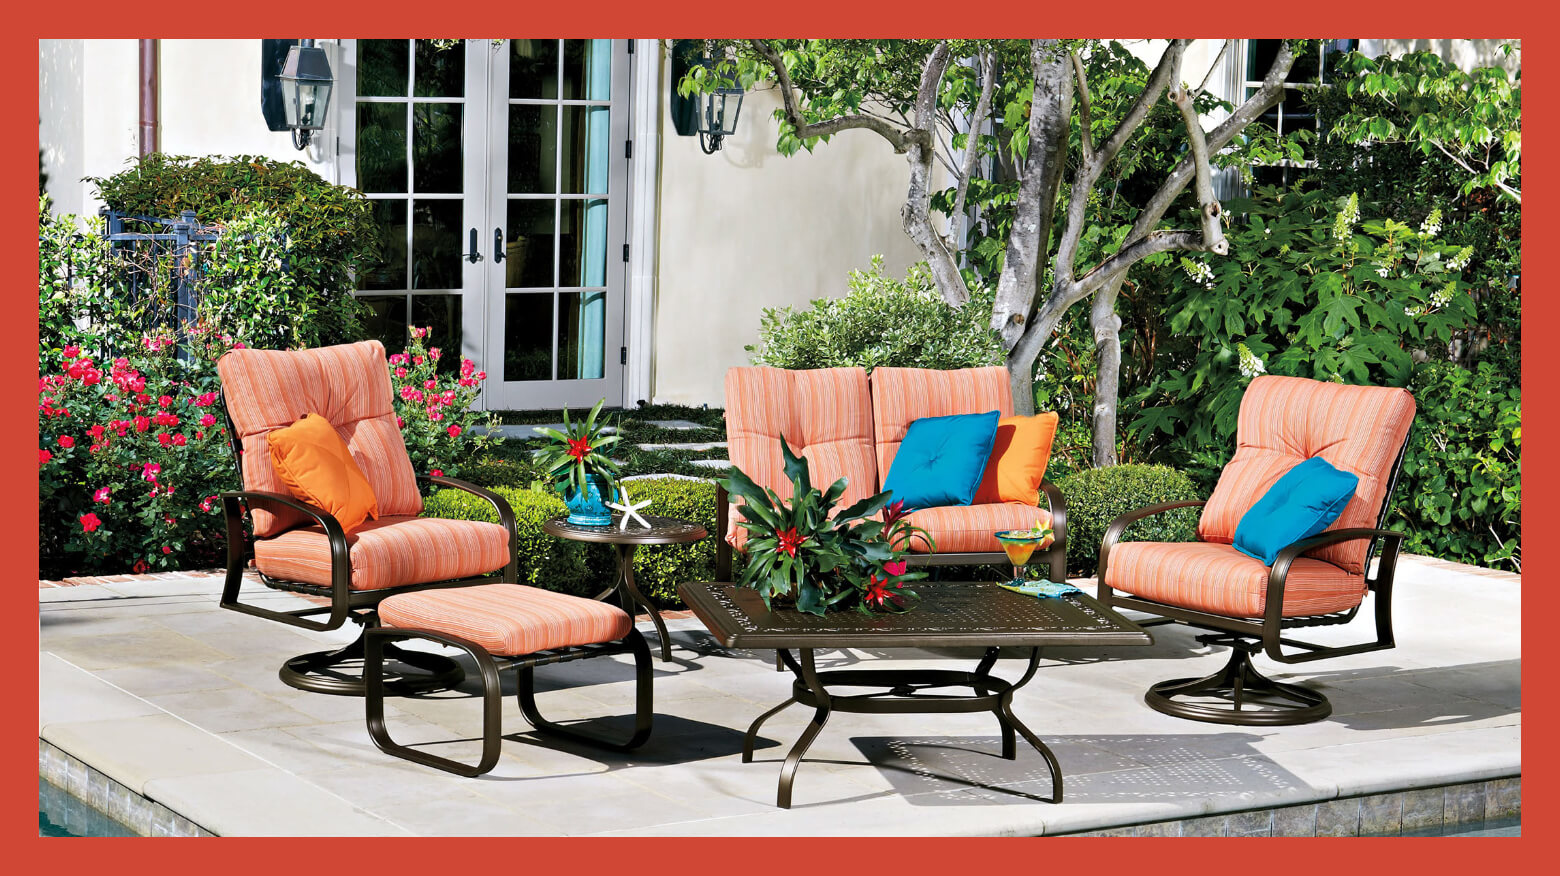 Woodard Patio Furniture Reviews, Is it worth it?